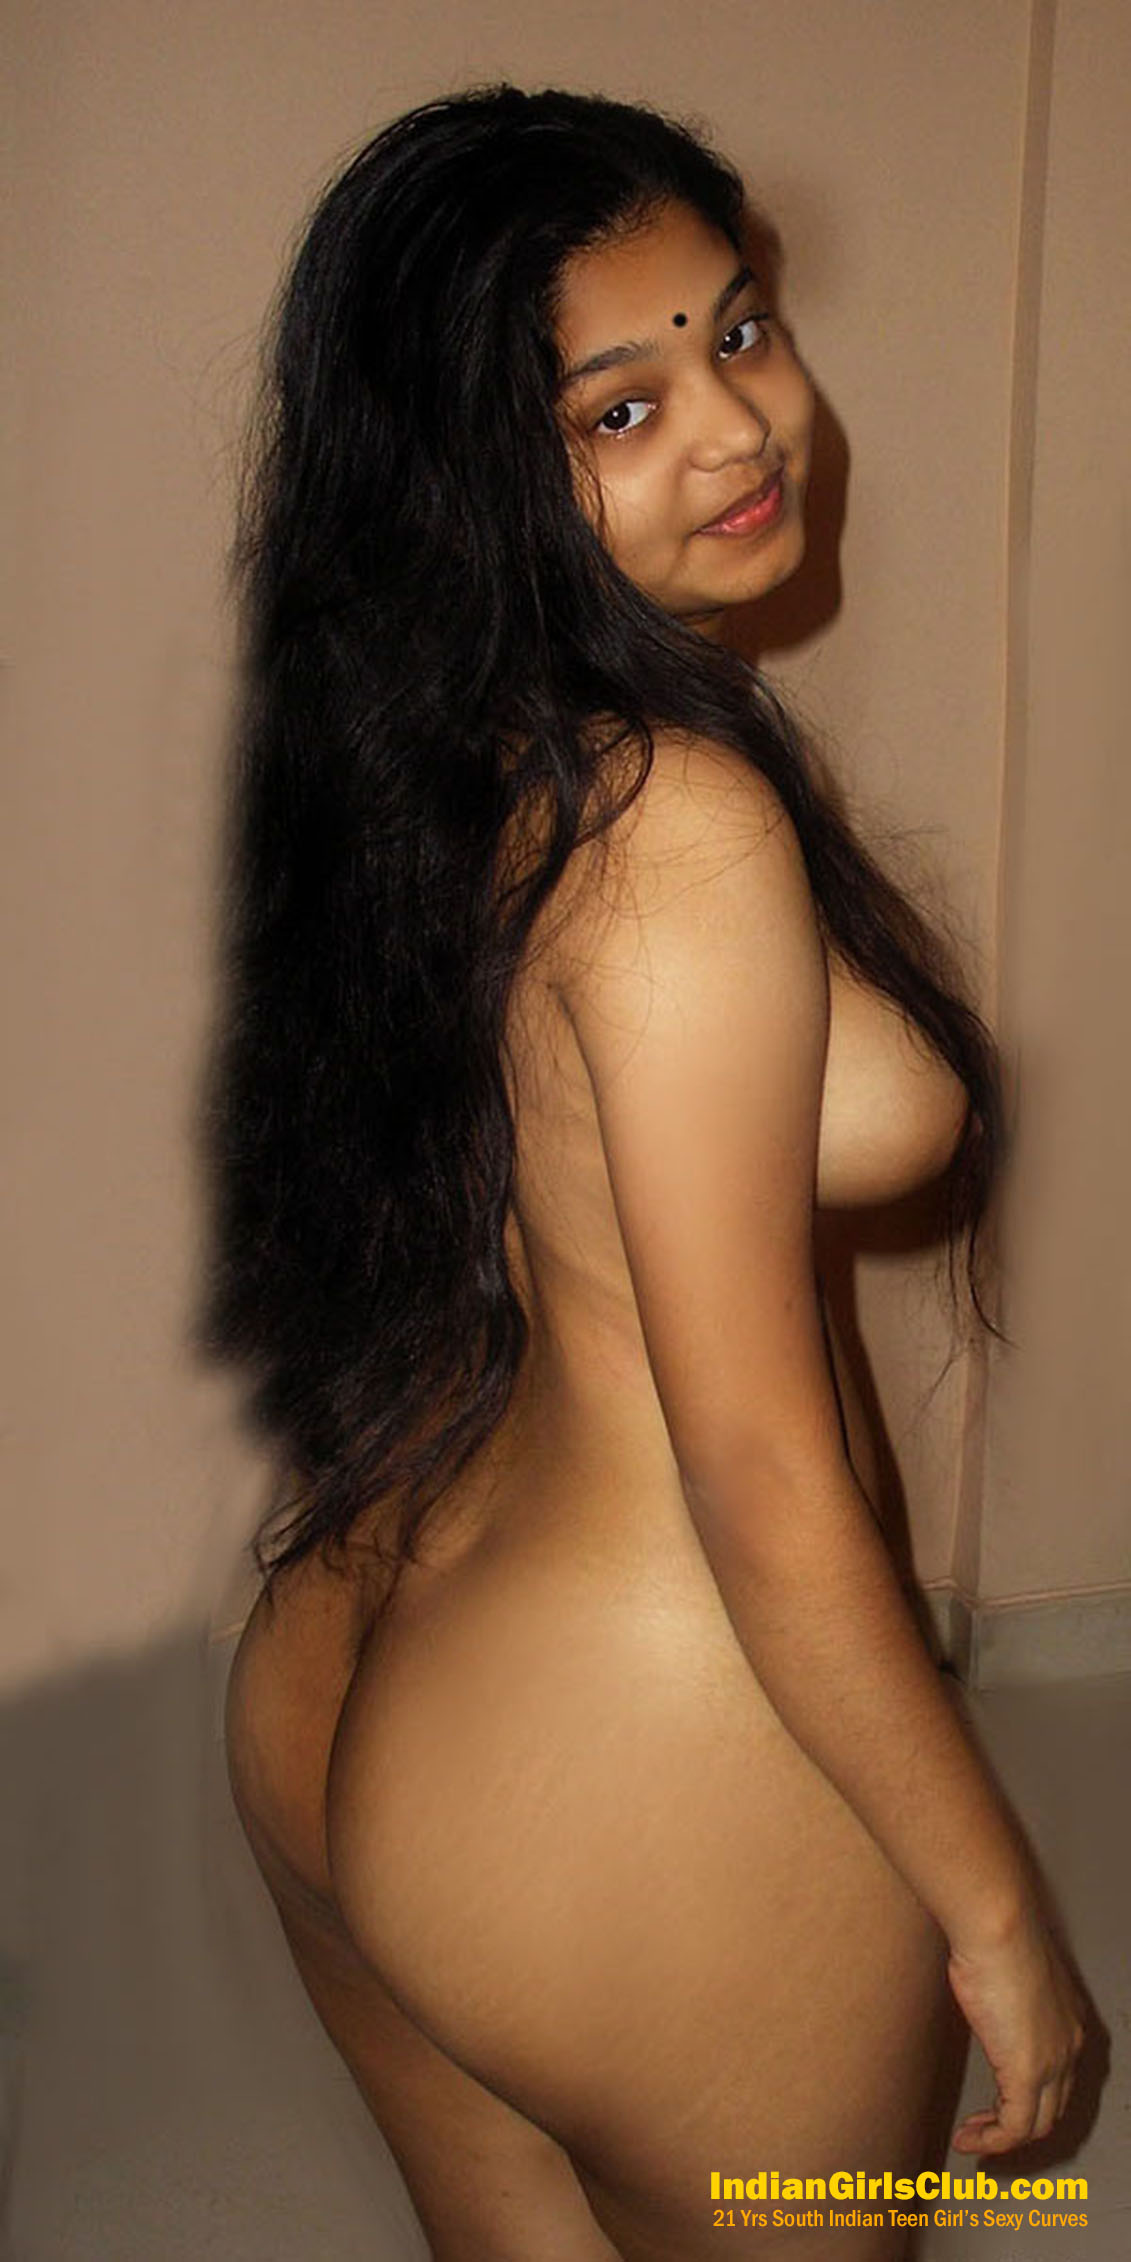 nude Indian girls gallery